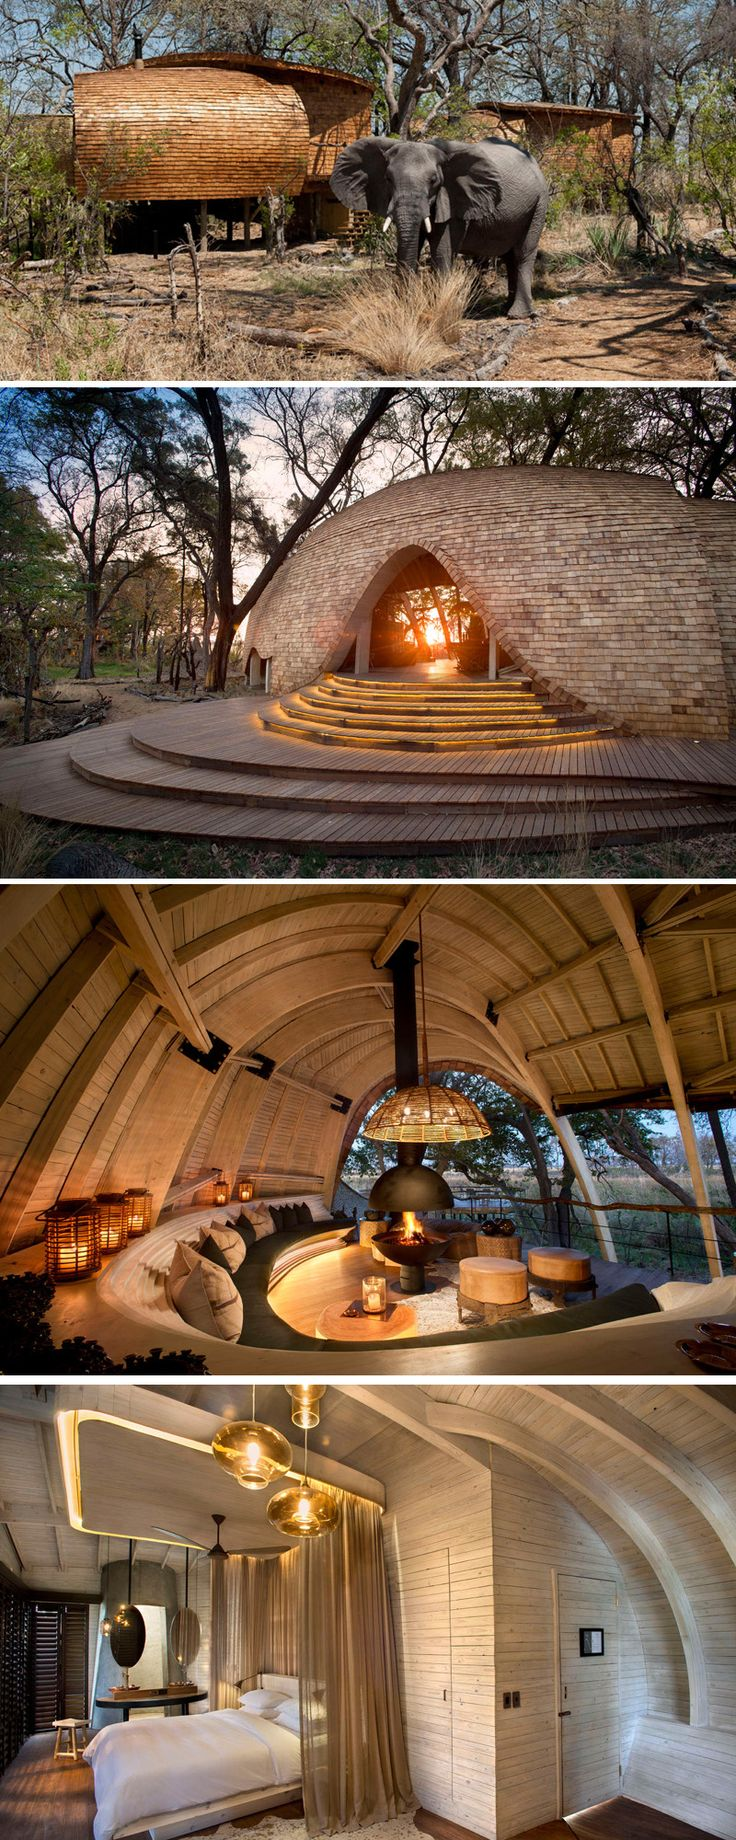 Michaelis Boyd has worked together with local architect Nick Plewman, to design Sandibe Okavango, a sustainable safari lodge in Botswana.